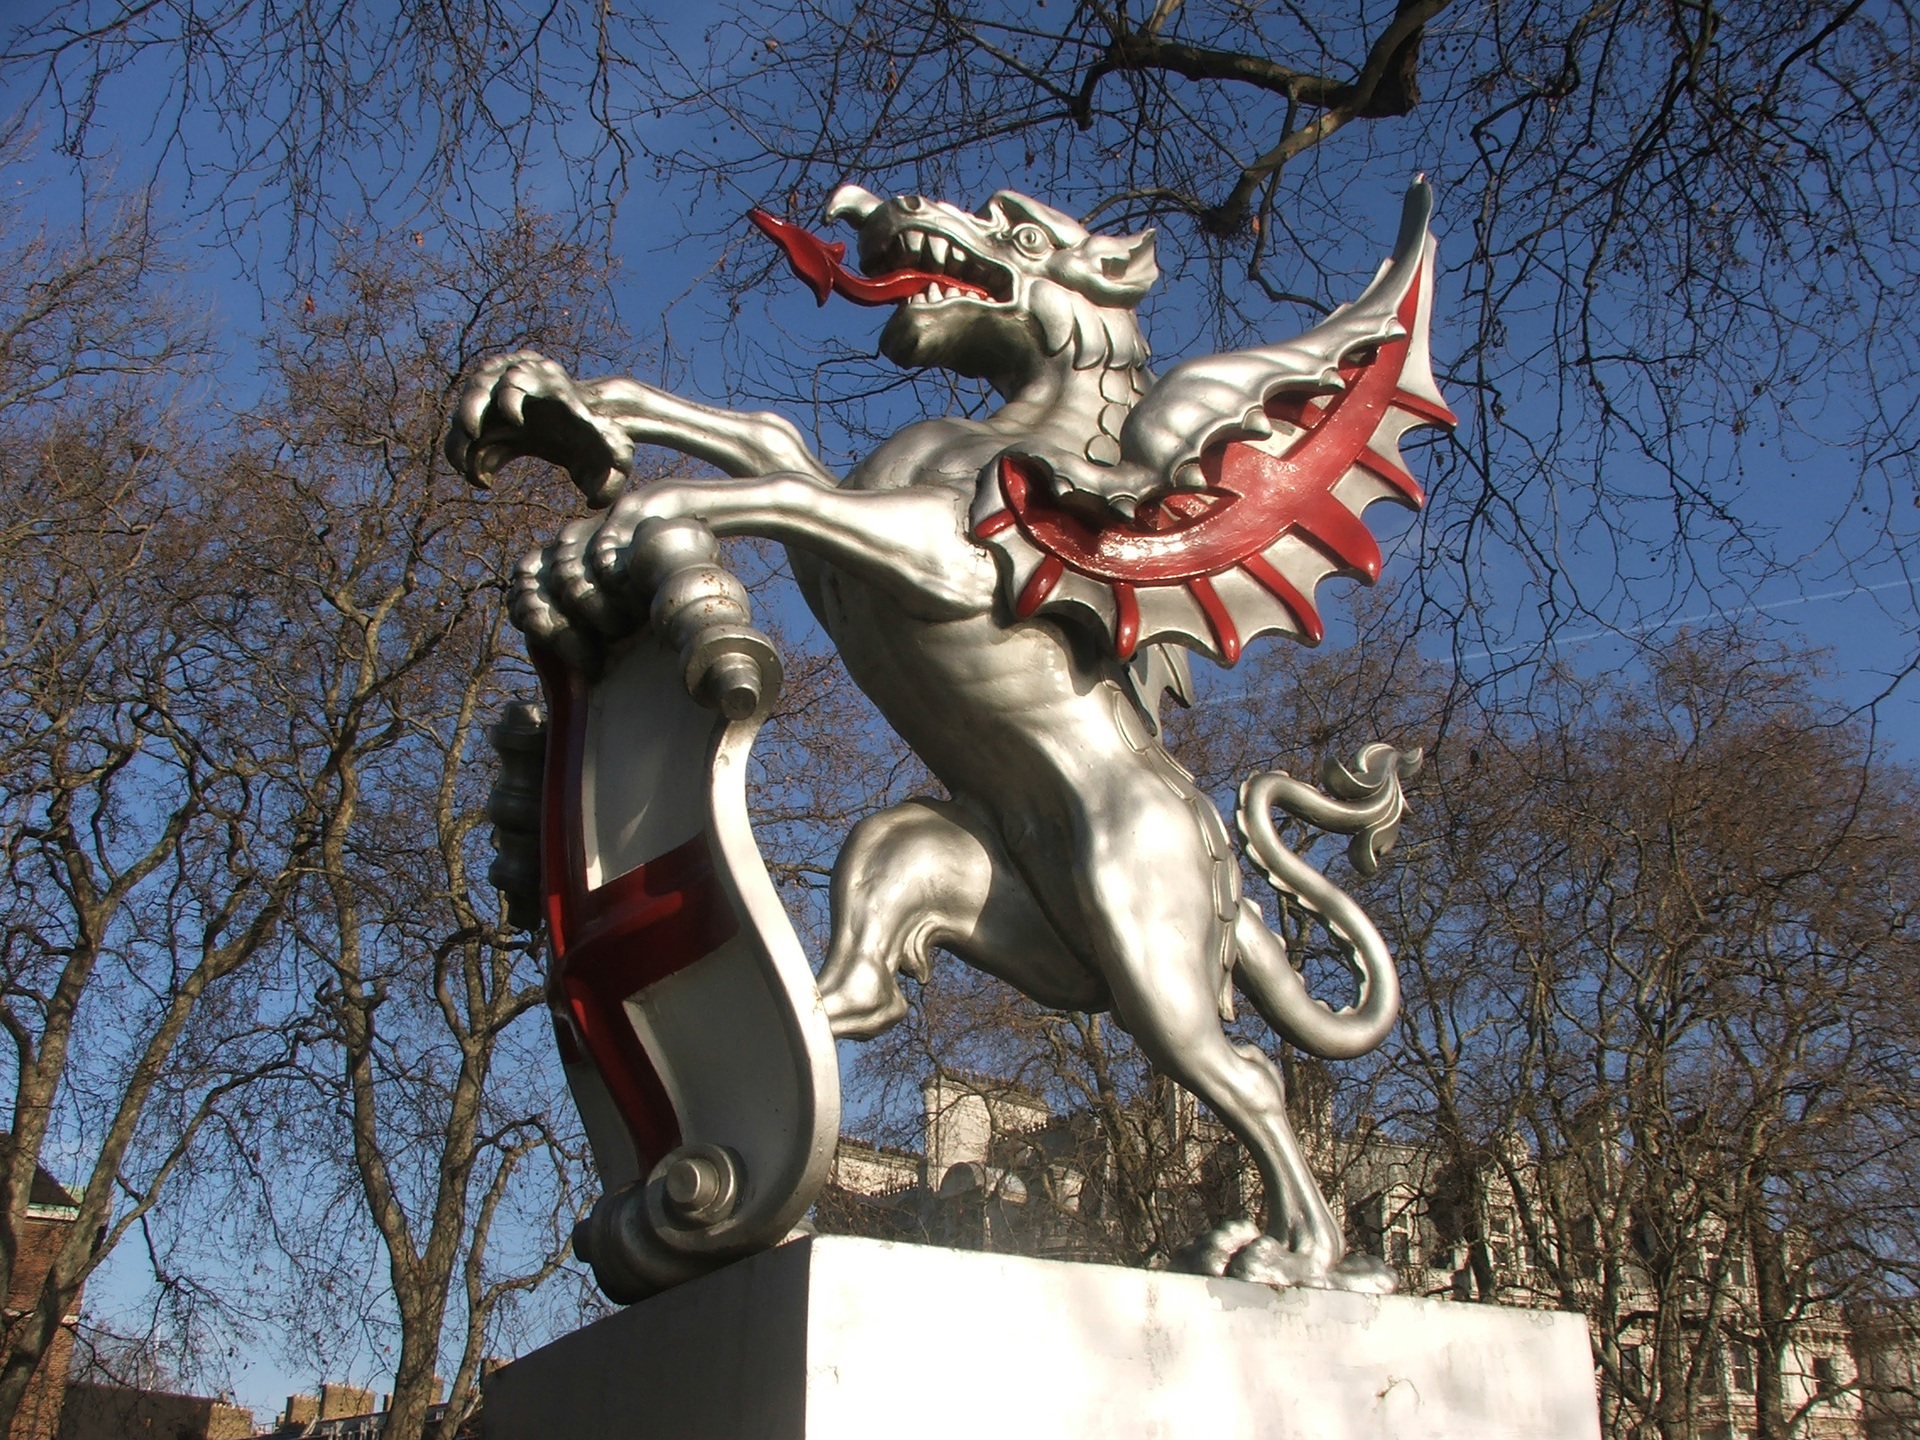 london-dragon-1451870-1920x1440